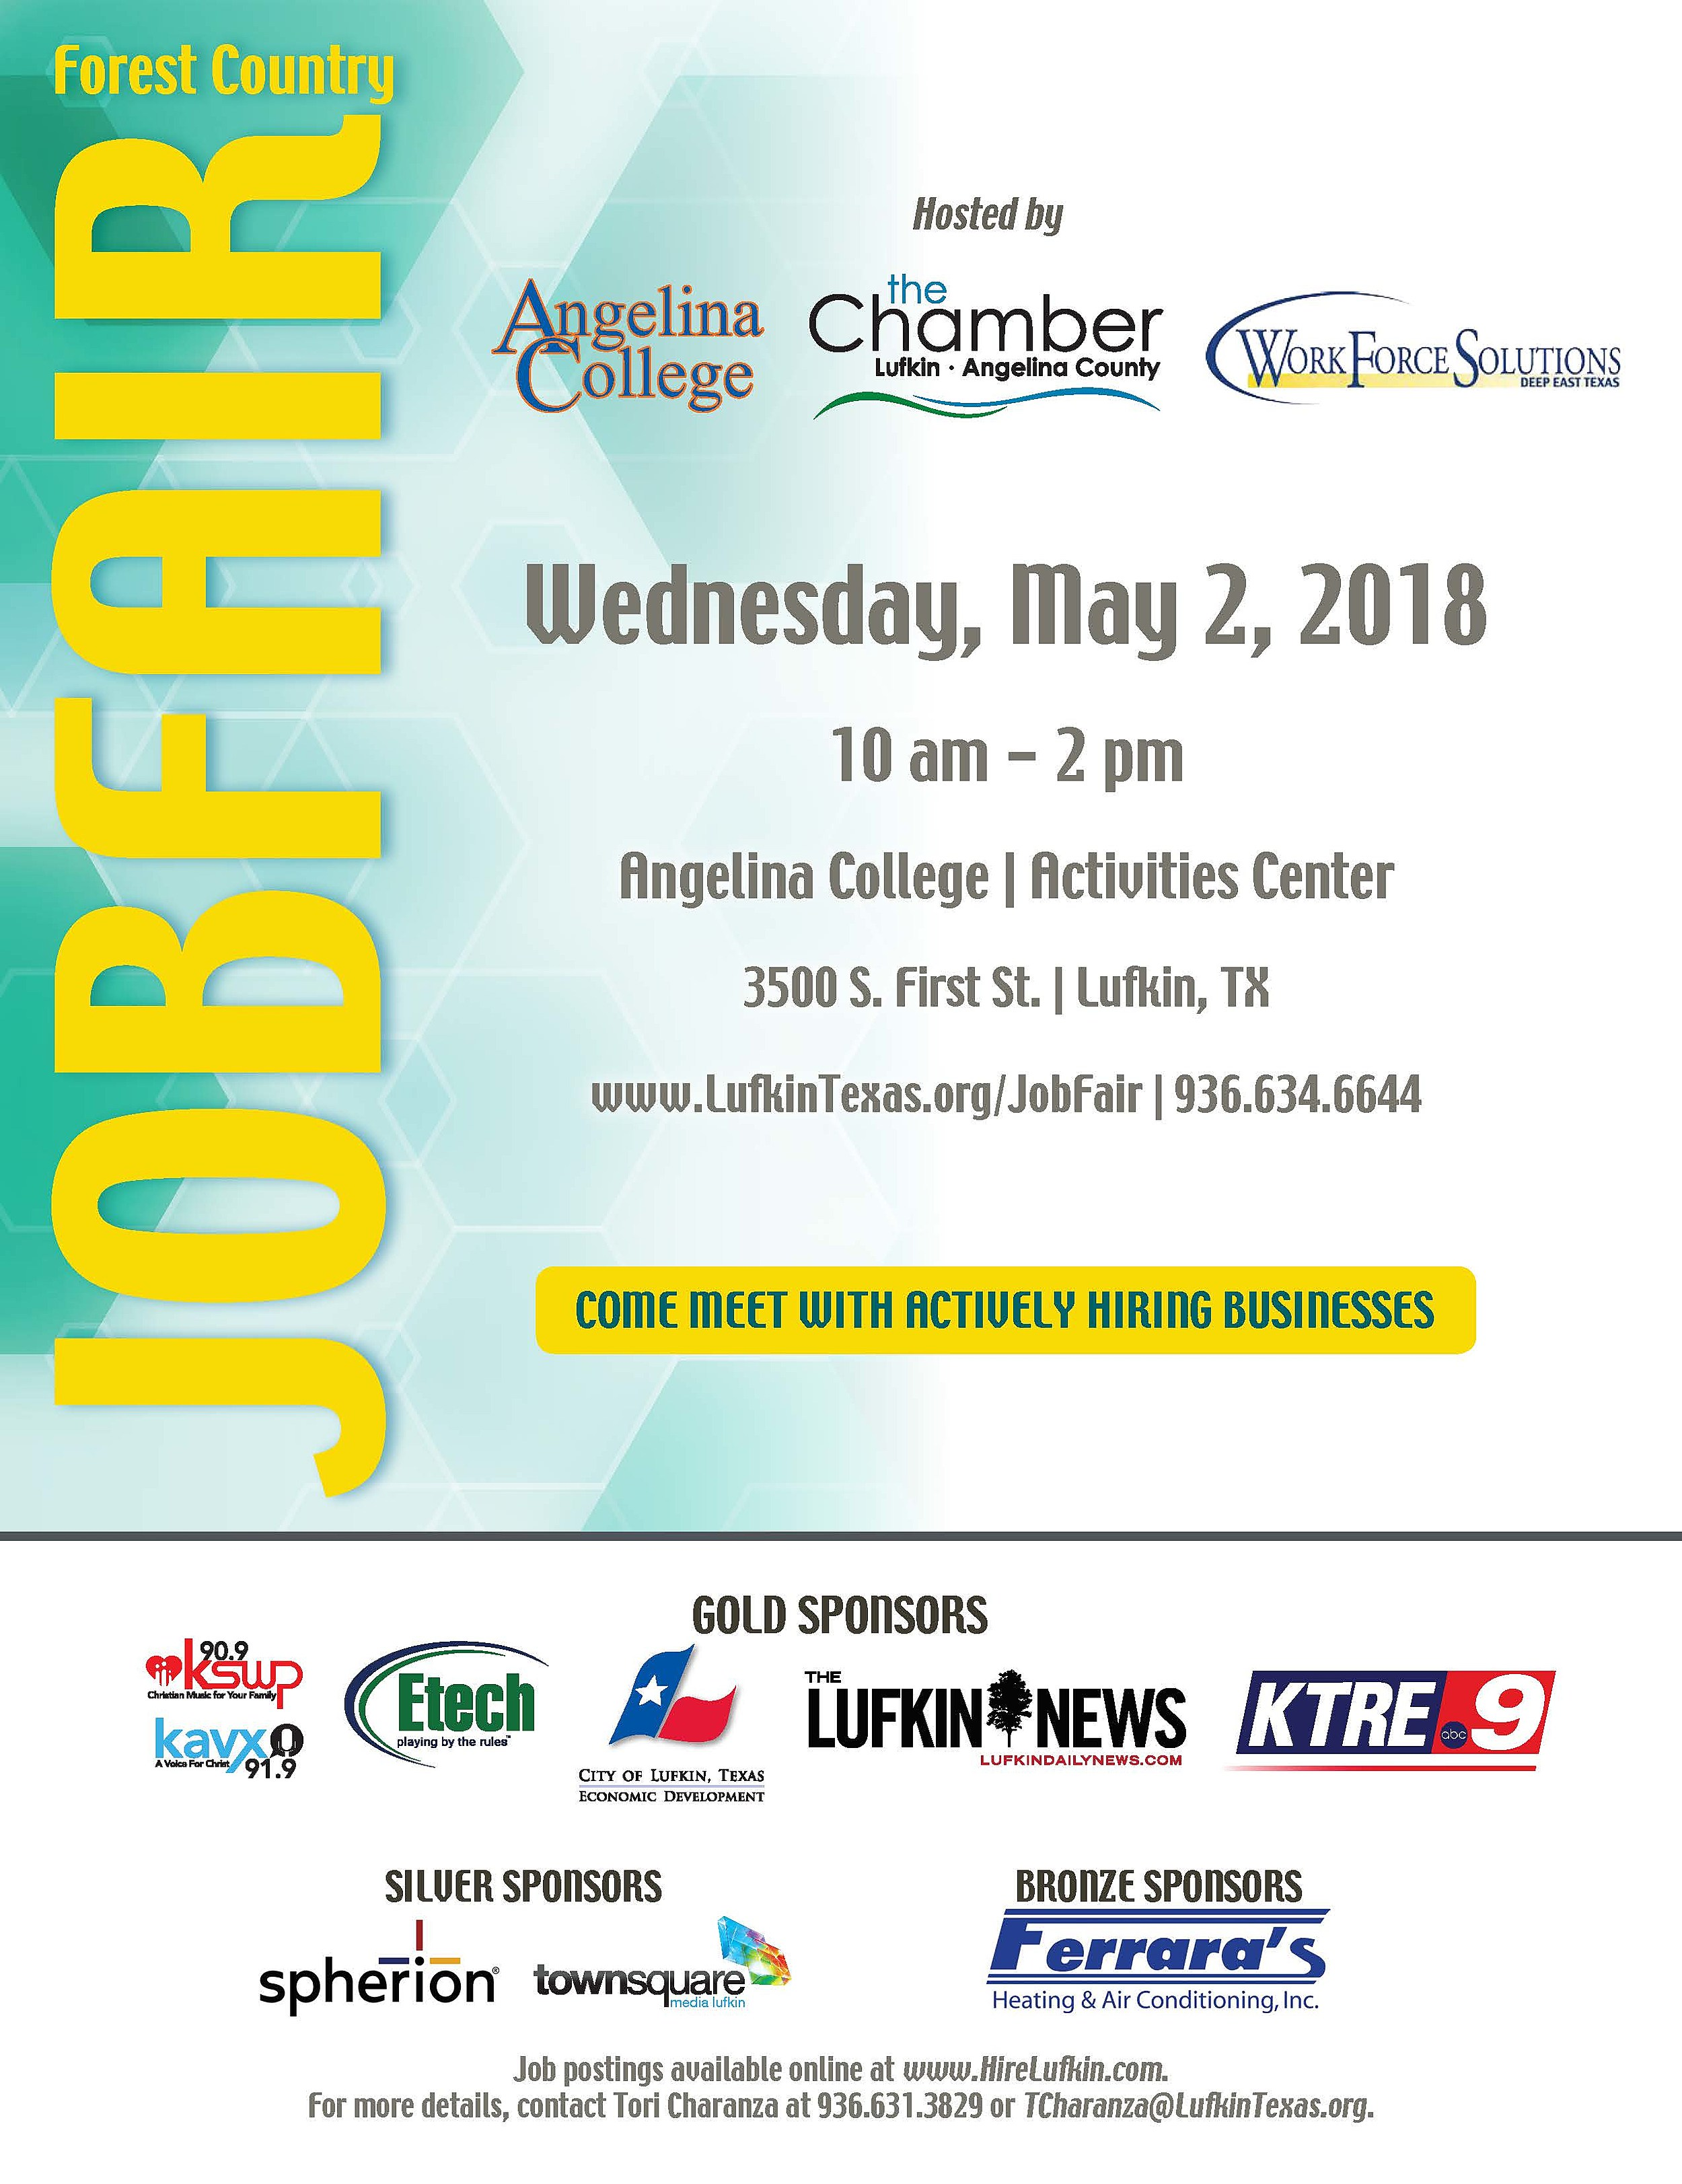 Itu0027s Wednesday May 2nd, From 10 Am 2 Pm Inside The Angelia College  Activities Center. Job Postings Are Available Online At Hirelufkin.com